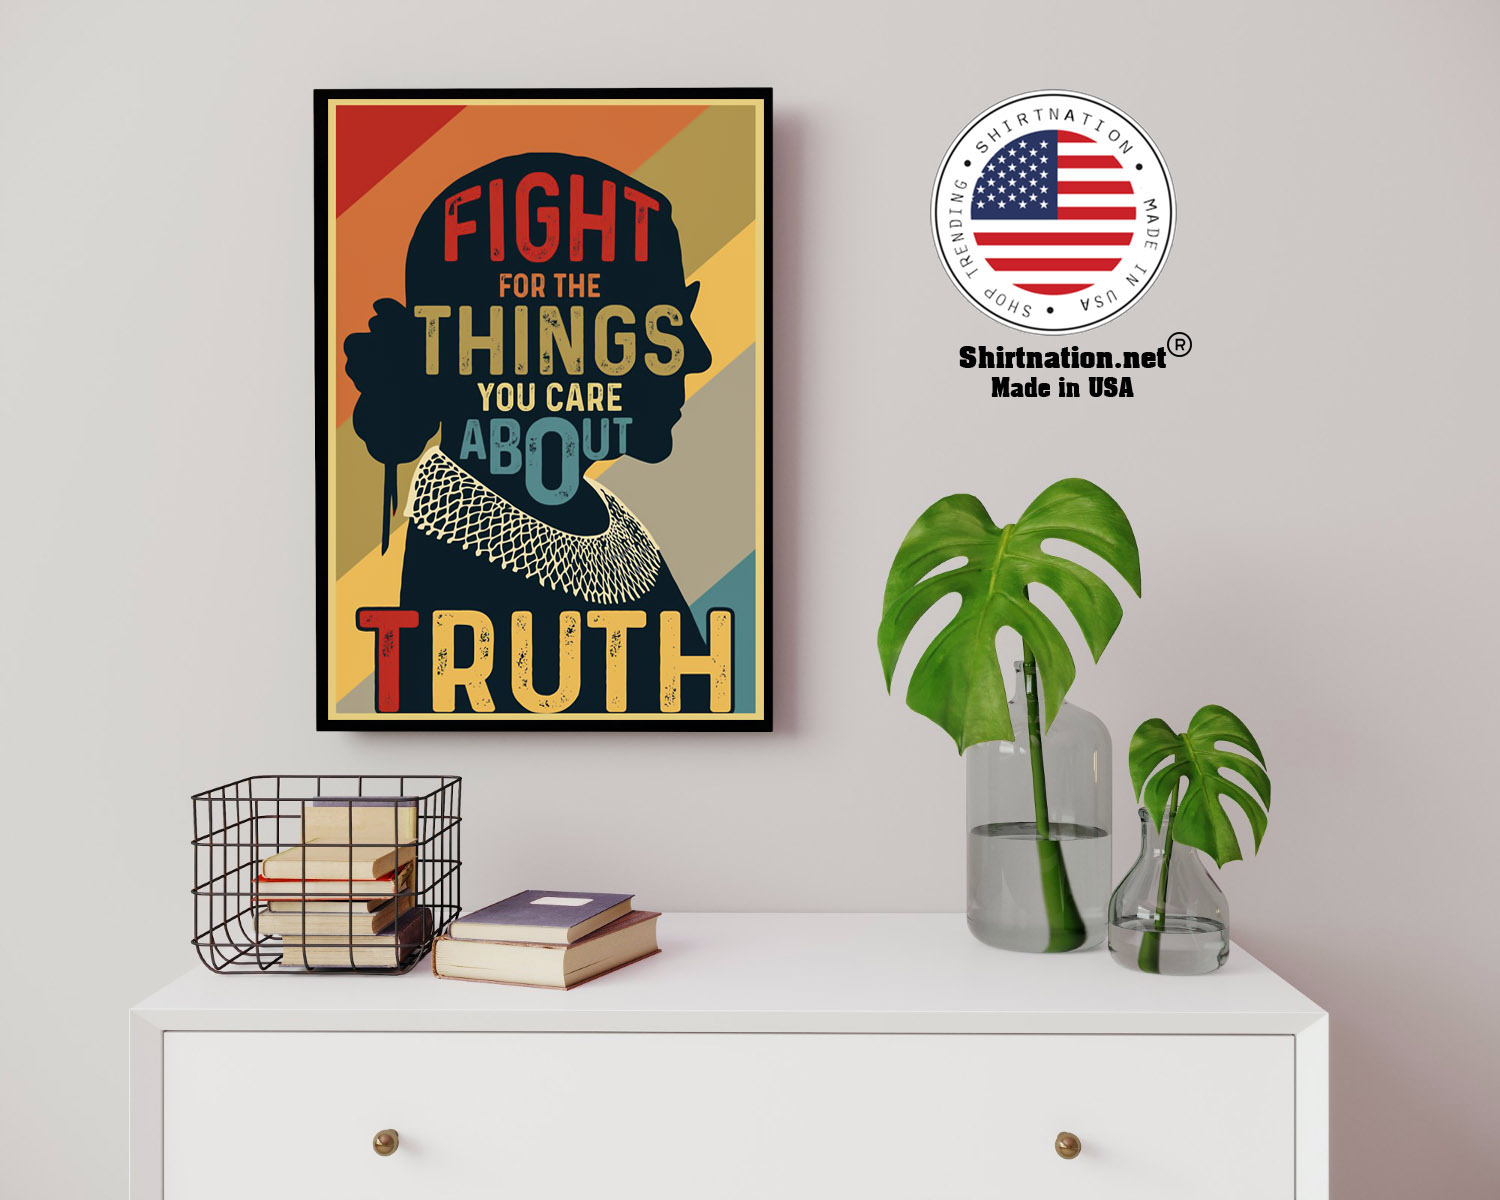 Ruth Fight for the things you care about truth poster 14 1